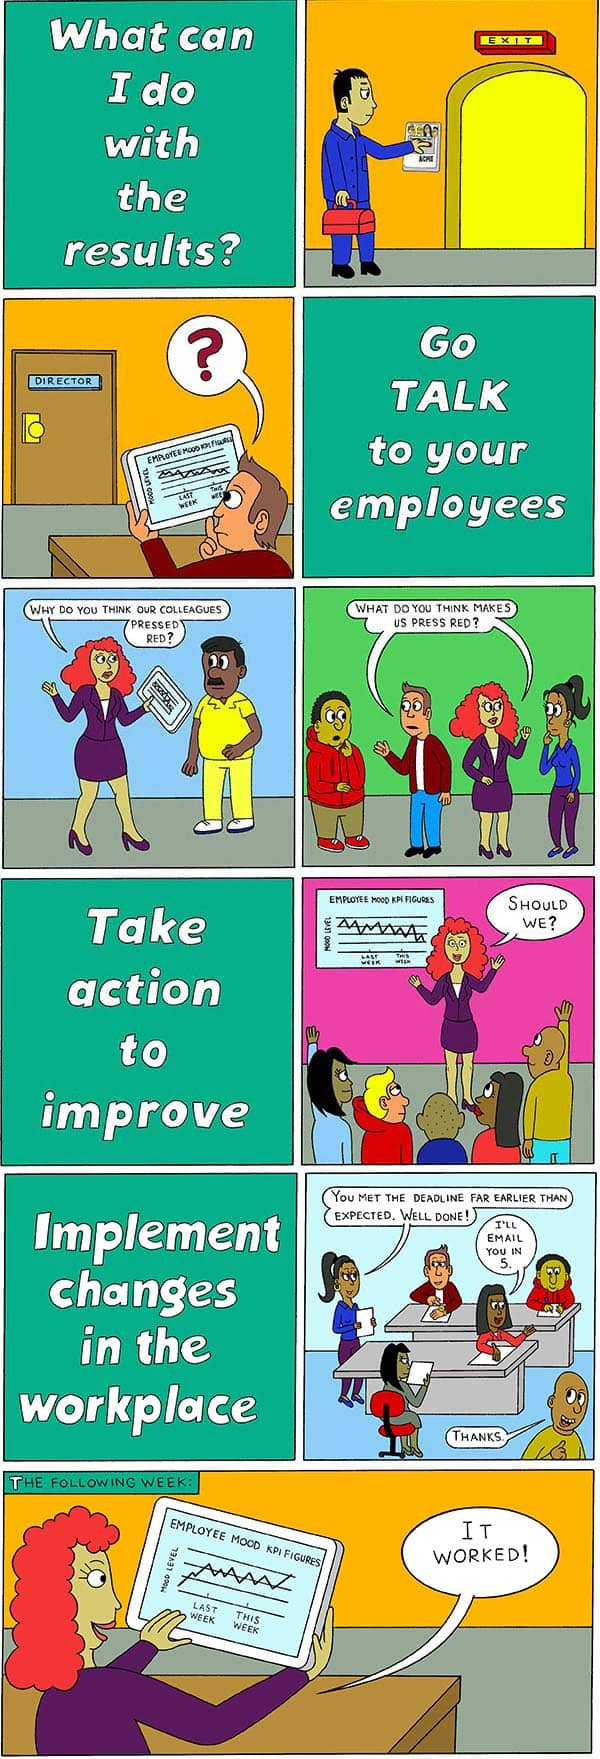 Improve employee morale continuously with small steps